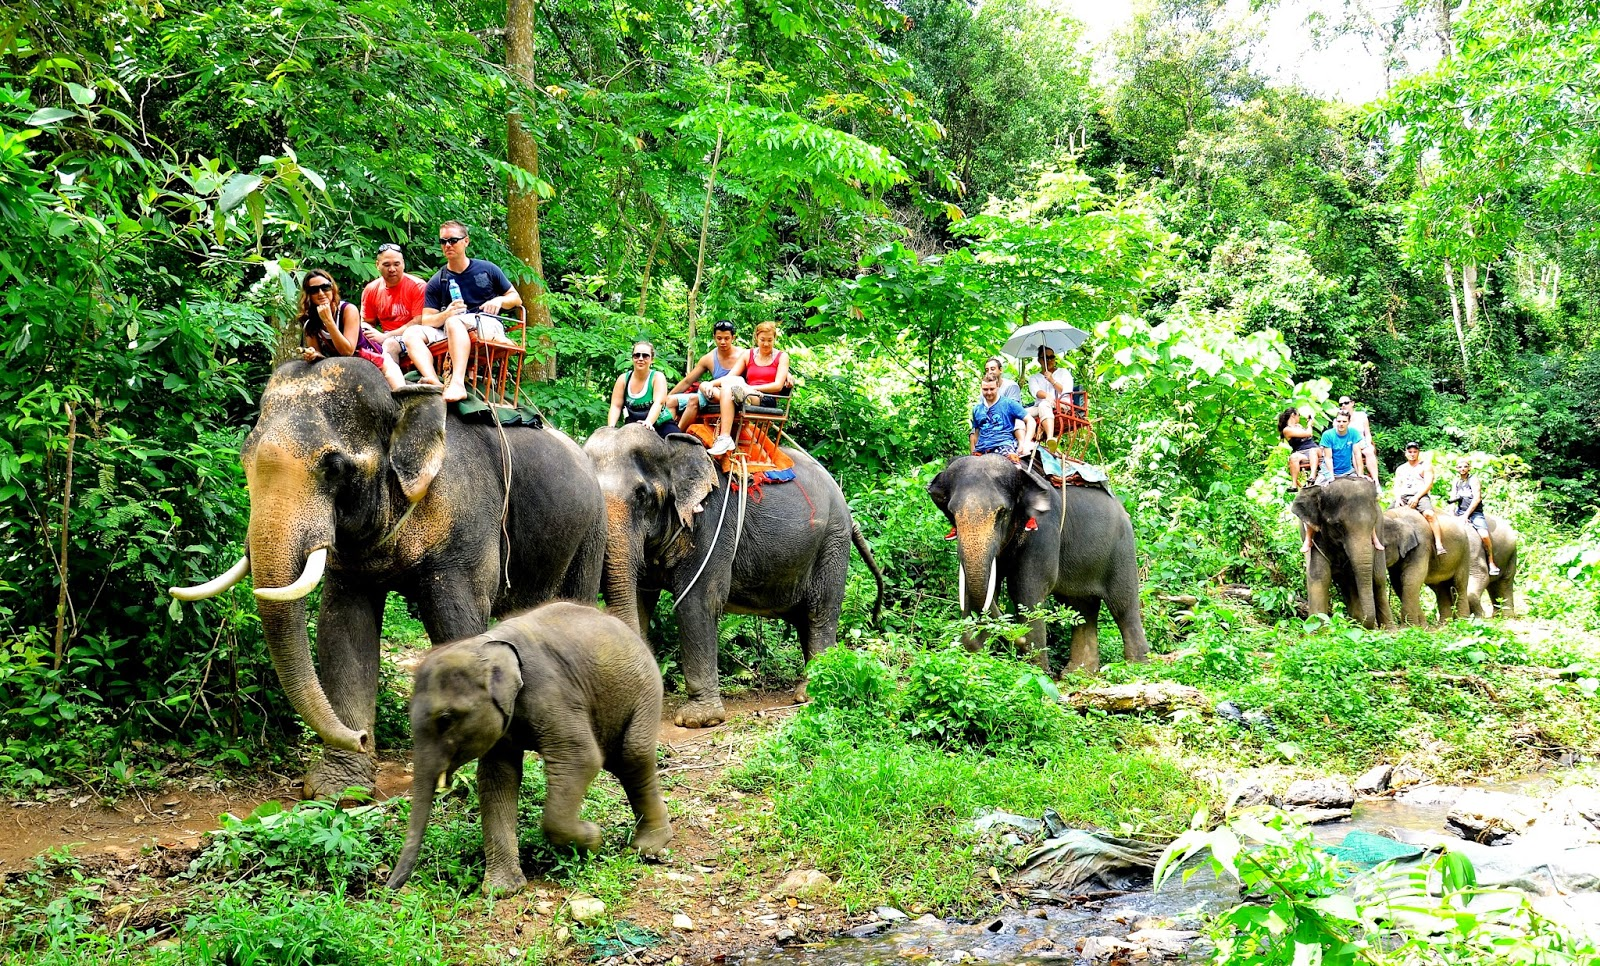 baby elephant - things to do in Thailand